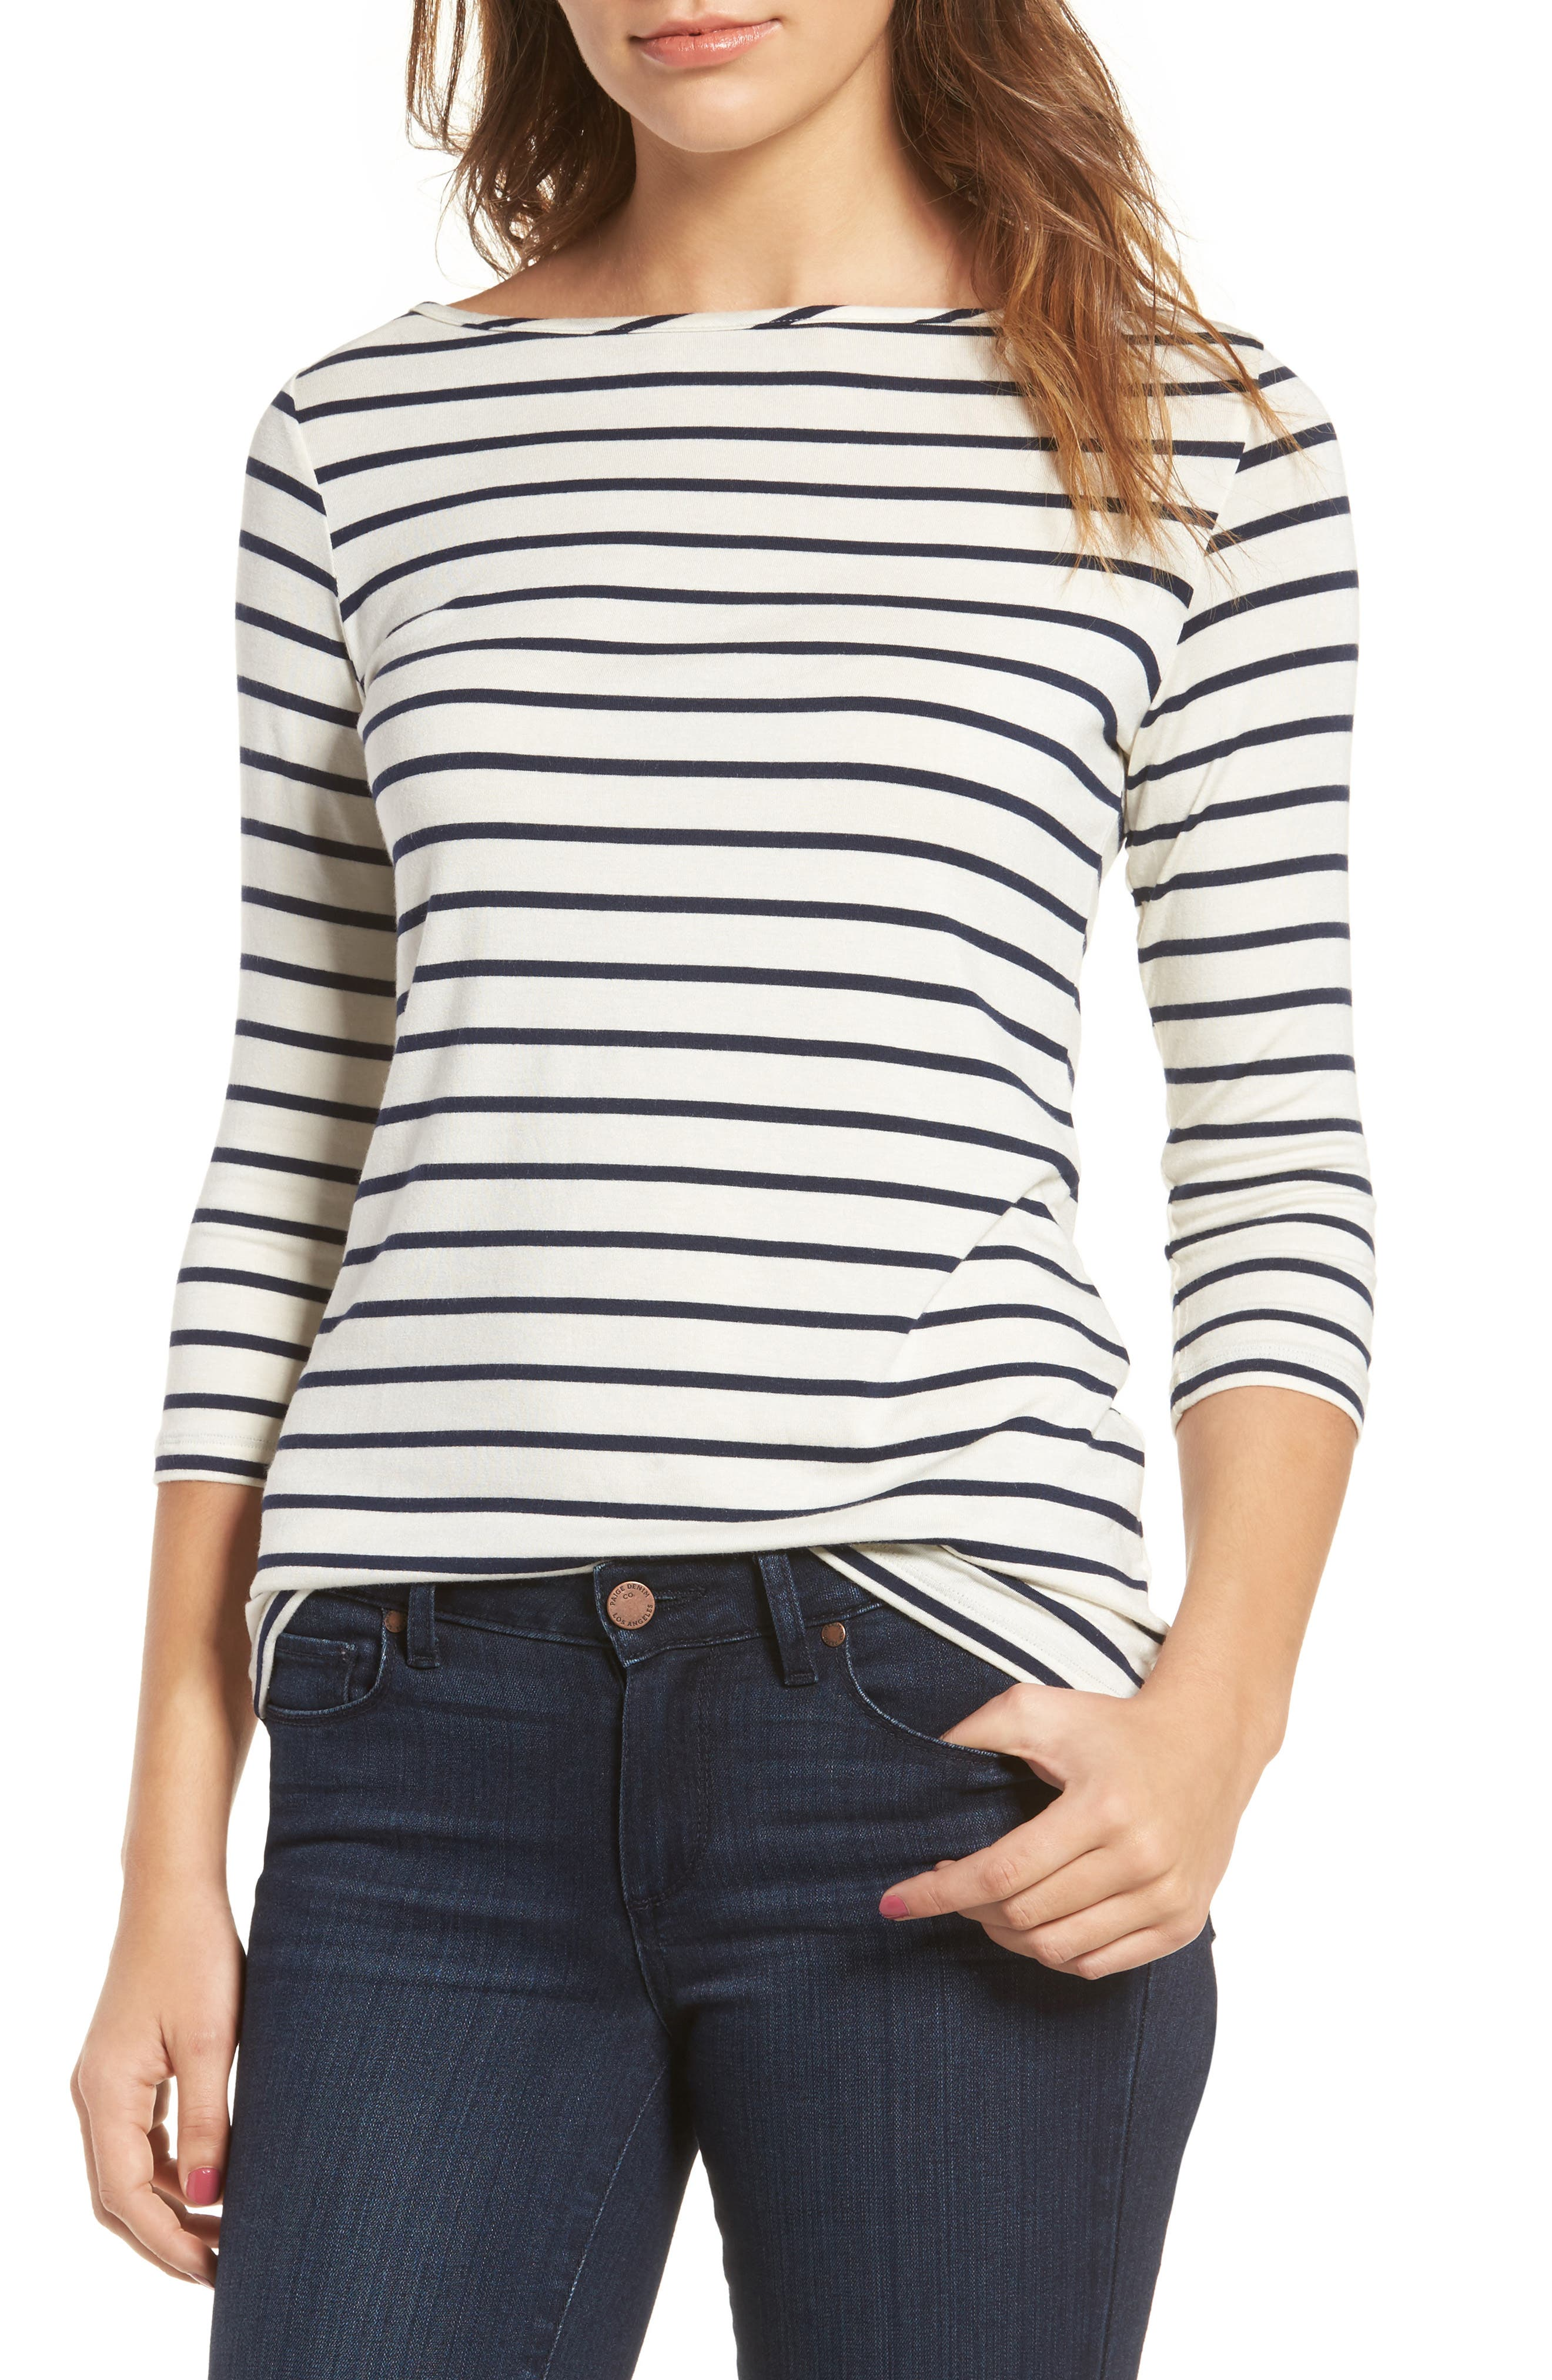 Amour Vert Francoise Stretch Jersey Top, White